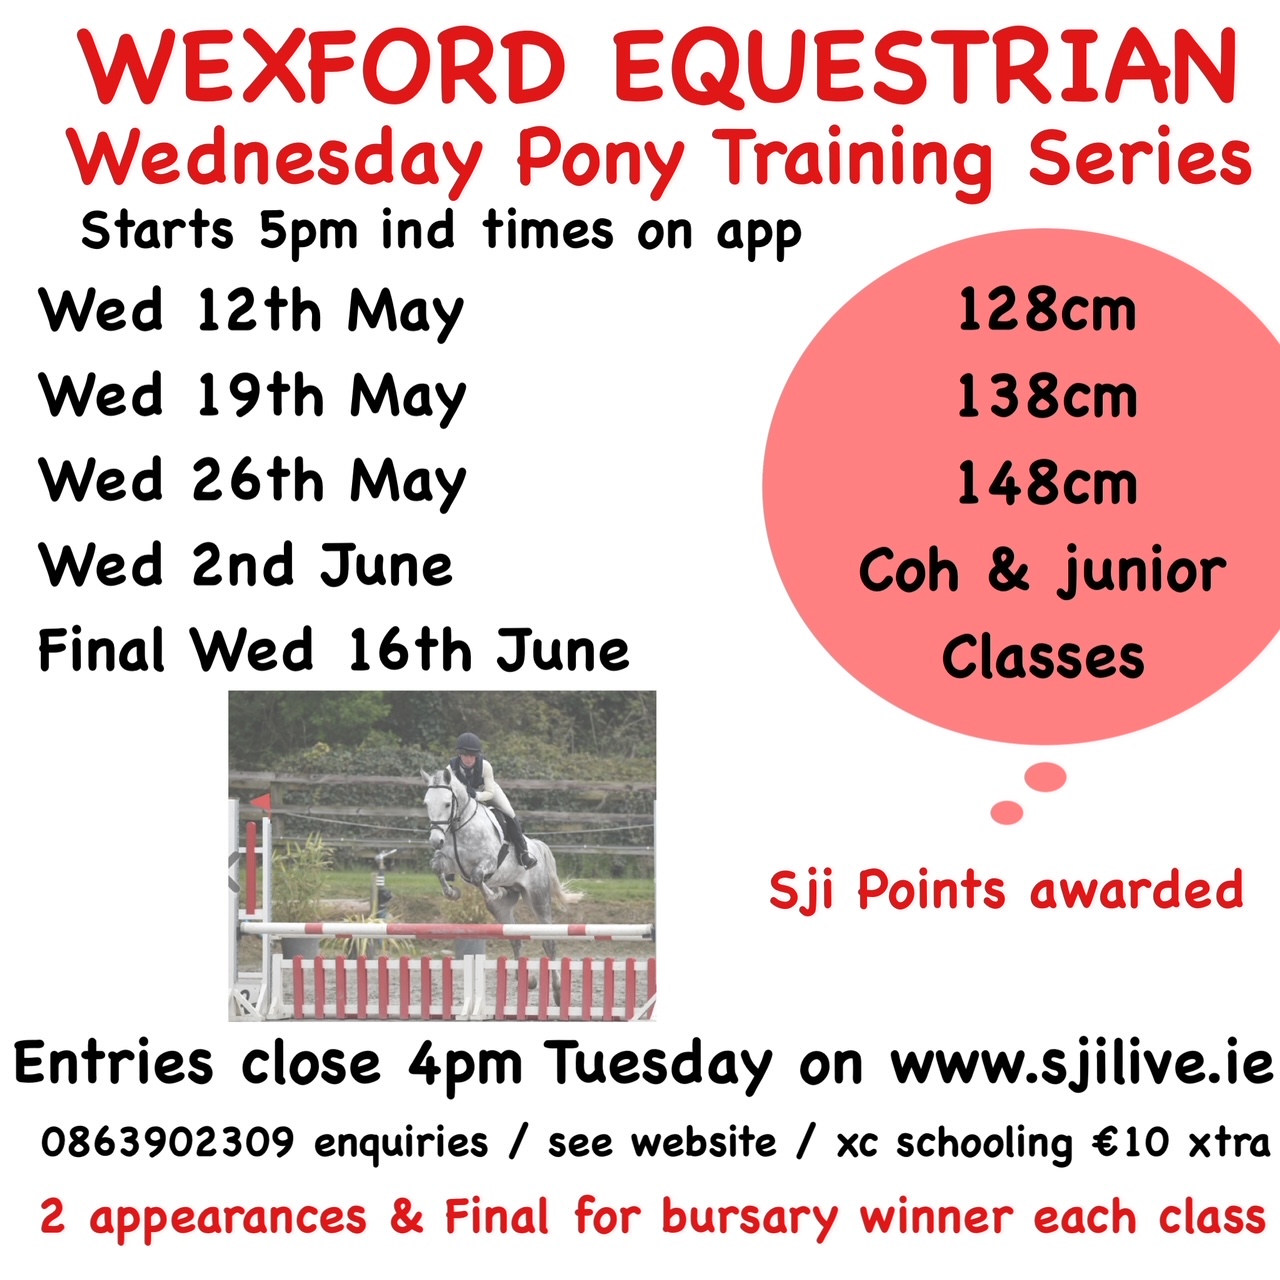 WEDNESDAY PONY SHOWJUMPING SERIES – WEEK 1